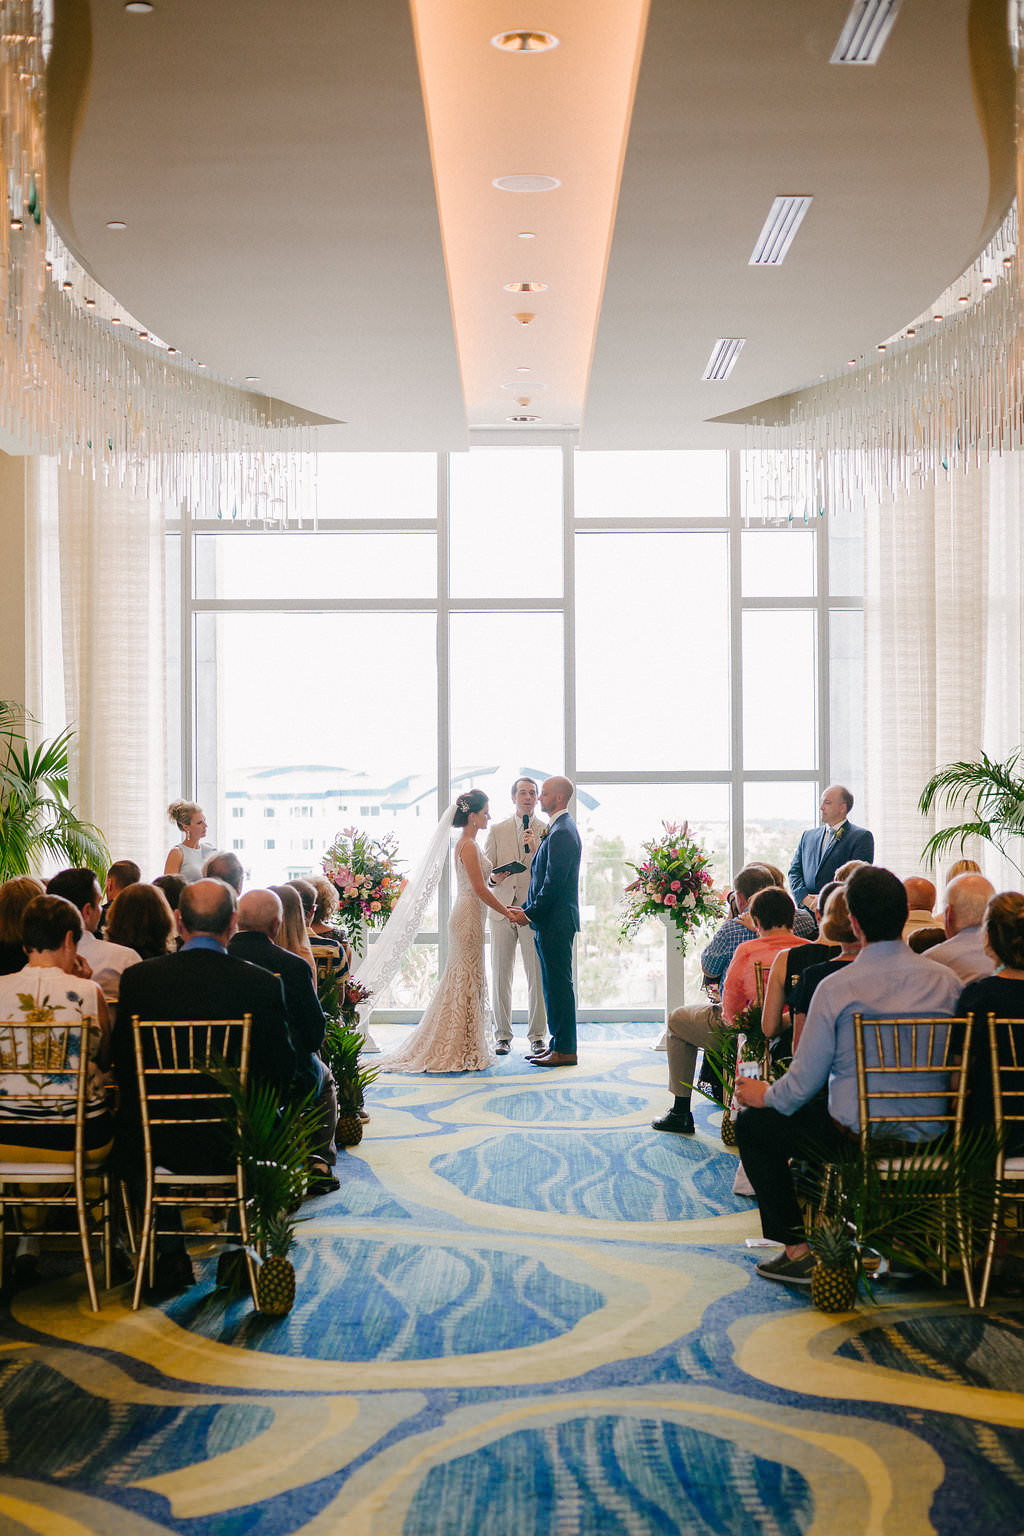 Indoor Hotel Wedding Ceremony Bride and Groom Portrait with Gold Chiavari Chairs and Tropical Florals | Tampa Bay Photographer Grind and Press | Clearwater Beach Opal Sands Resort | Special Moments Event Planning